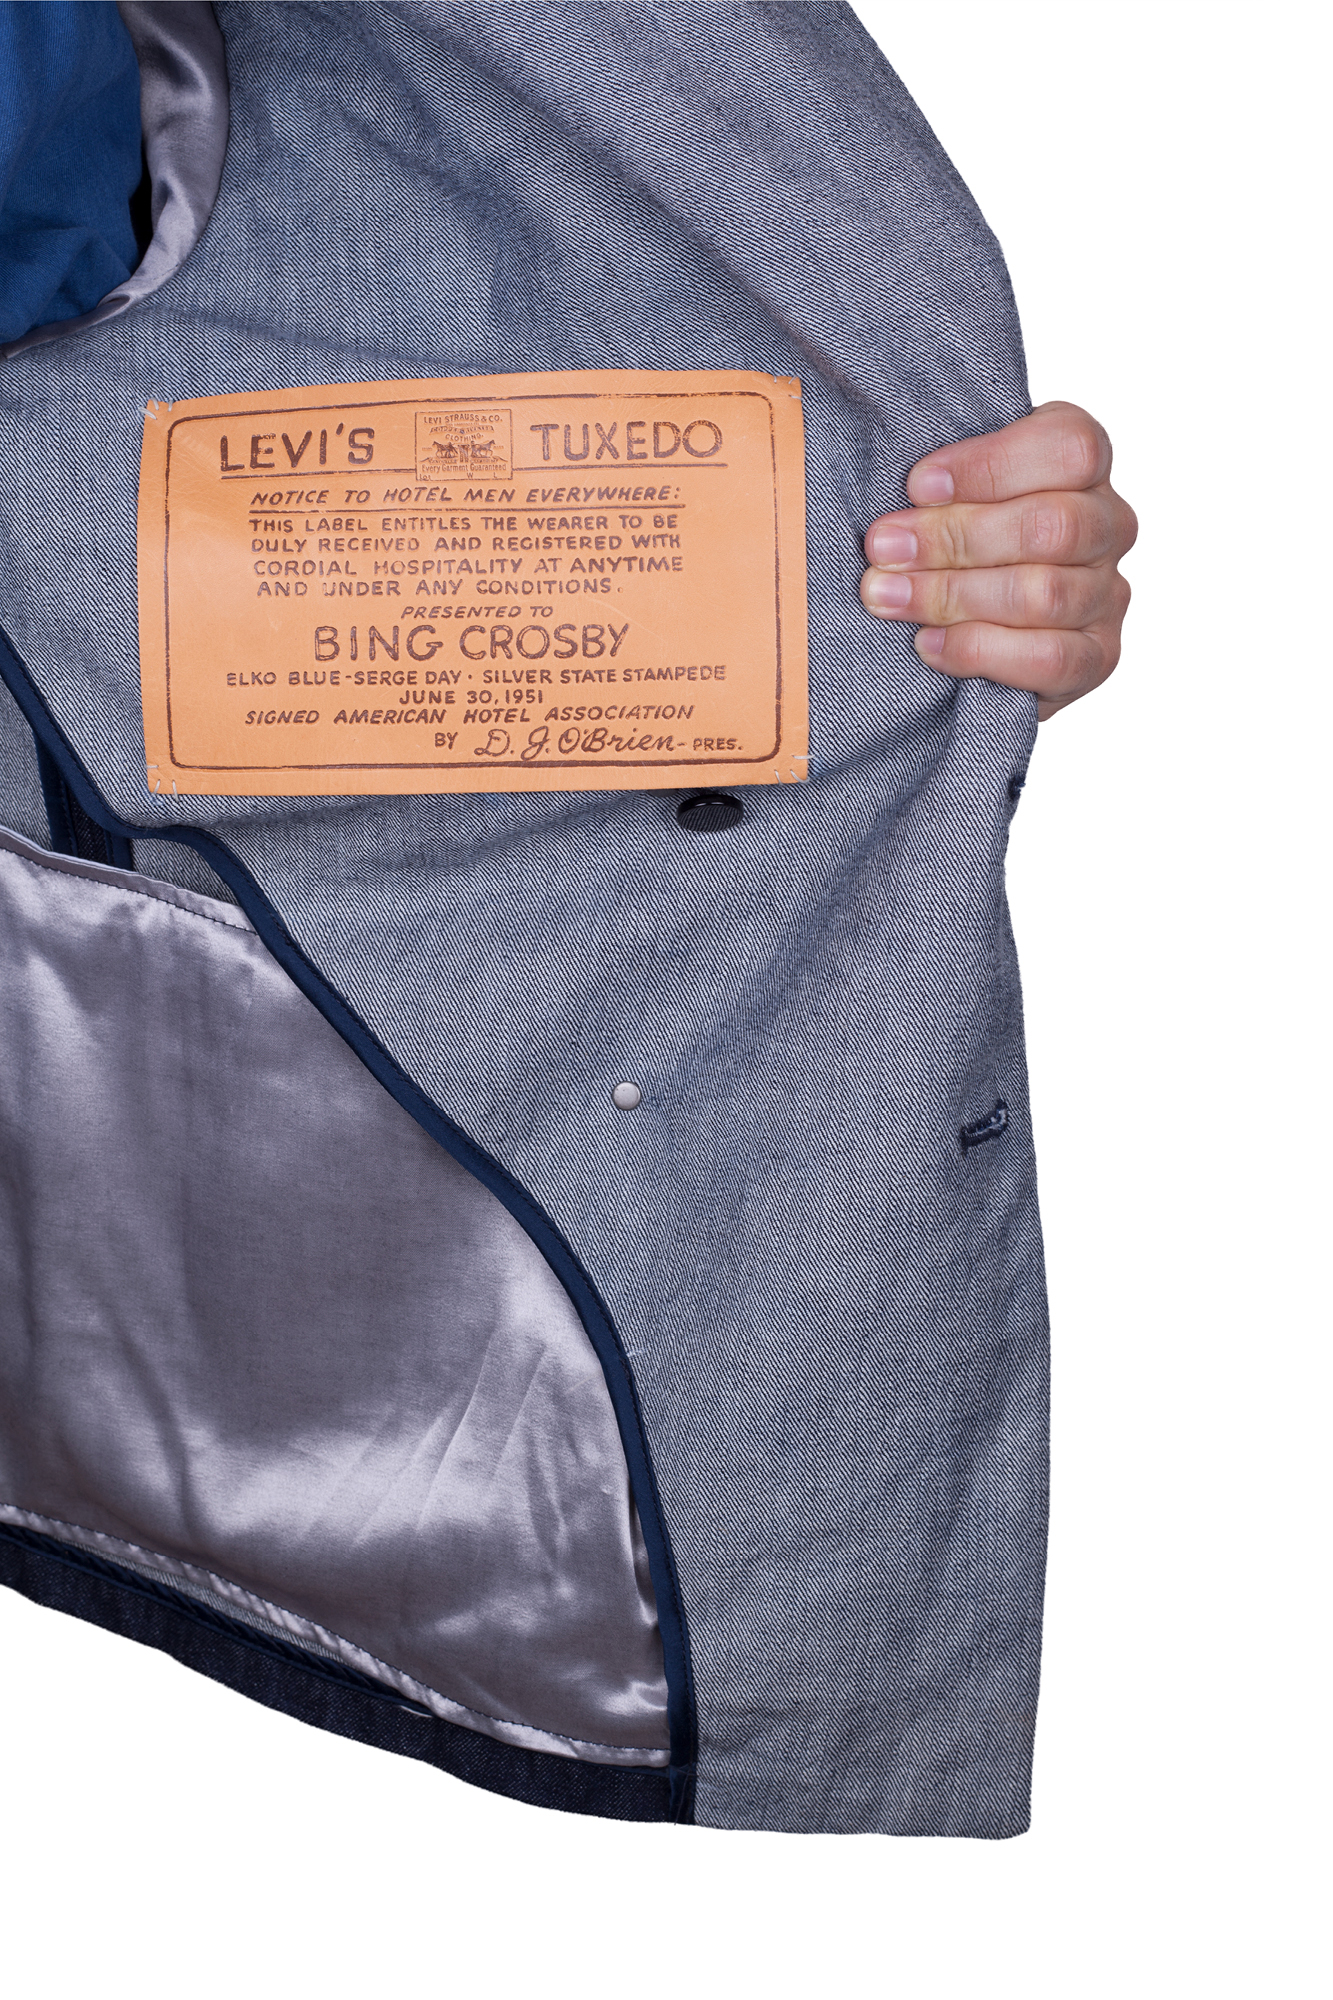 The leather label that entitled Bing Crosby to enter any hotels, inside his Levi's denim jacket